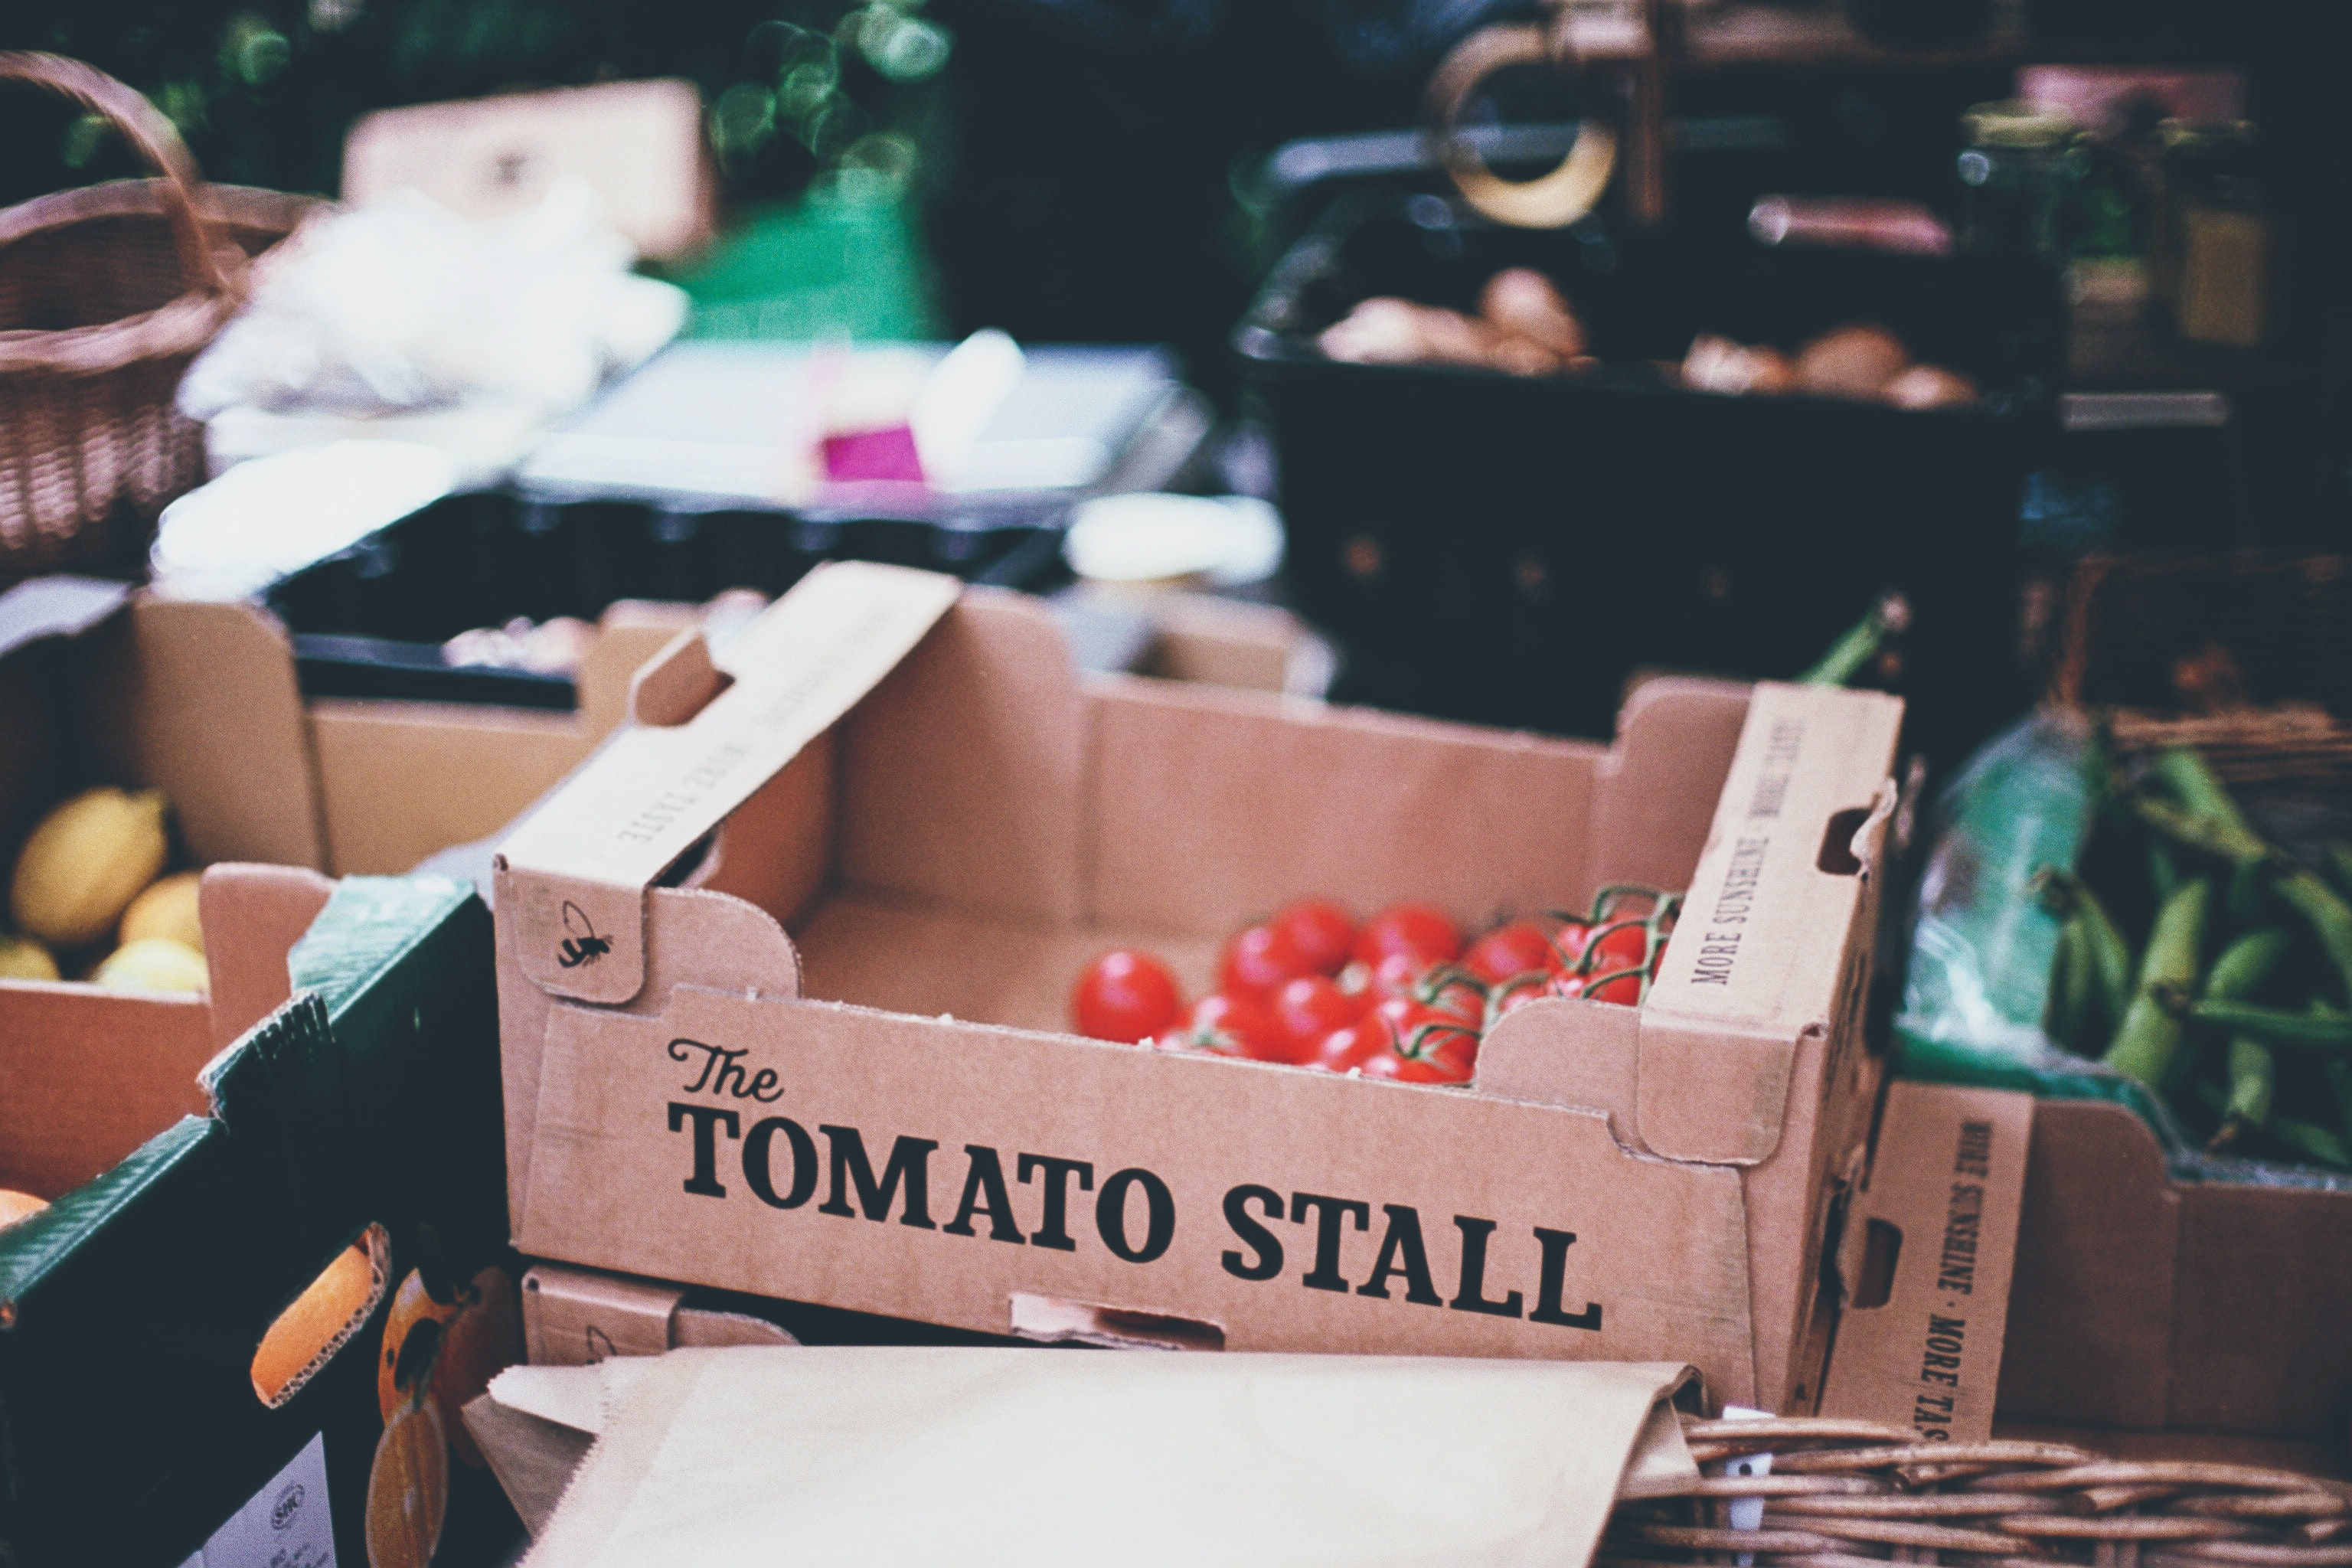 selective photography of tomato stall box on crate